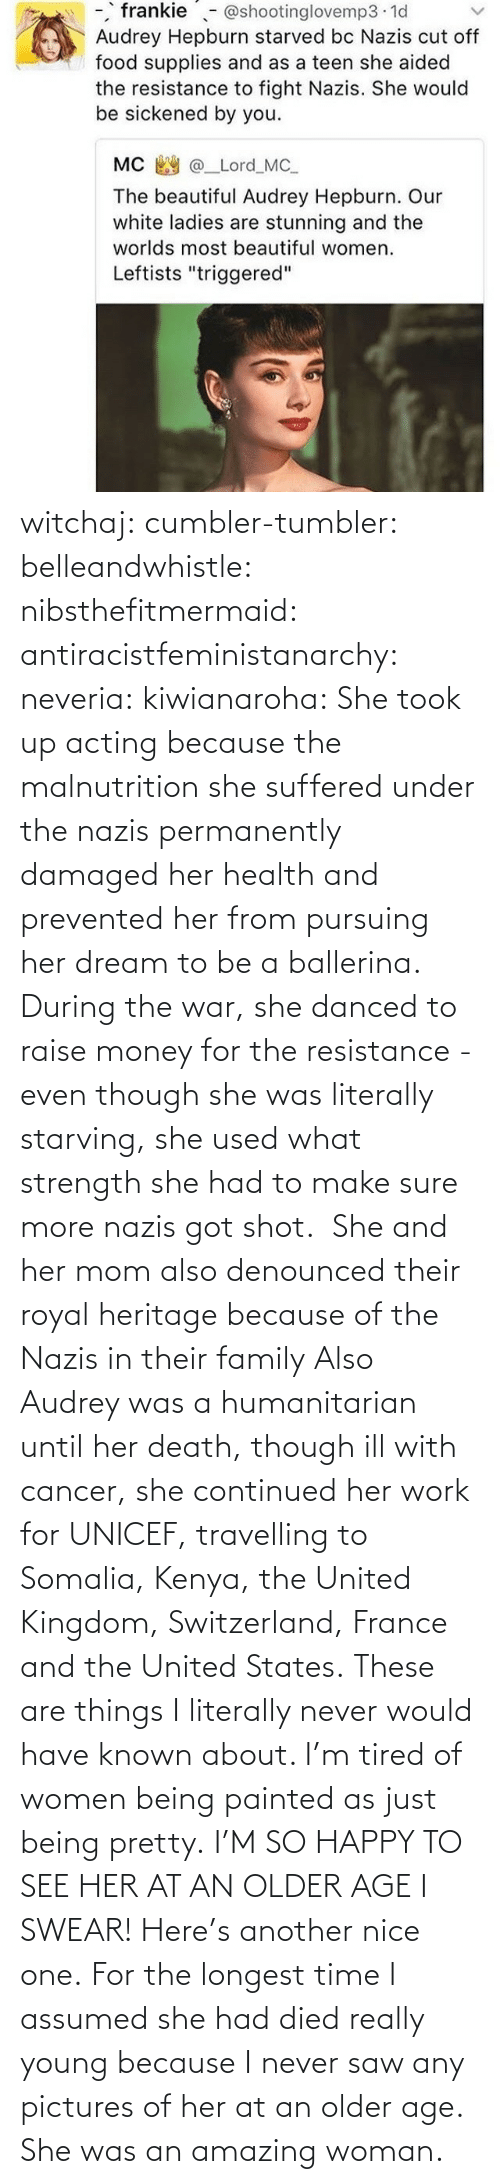 Are: witchaj: cumbler-tumbler:  belleandwhistle:  nibsthefitmermaid:  antiracistfeministanarchy:  neveria:  kiwianaroha: She took up acting because the malnutrition she suffered under the nazis permanently damaged her health and prevented her from pursuing her dream to be a ballerina. During the war, she danced to raise money for the resistance - even though she was literally starving, she used what strength she had to make sure more nazis got shot.  She and her mom also denounced their royal heritage because of the Nazis in their family  Also Audrey was a humanitarian until her death, though ill with cancer, she continued her work for UNICEF, travelling to Somalia, Kenya, the United Kingdom, Switzerland, France and the United States.  These are things I literally never would have known about. I'm tired of women being painted as just being pretty.  I'M SO HAPPY TO SEE HER AT AN OLDER AGE I SWEAR!  Here's another nice one.   For the longest time I assumed she had died really young because I never saw any pictures of her at an older age.  She was an amazing woman.